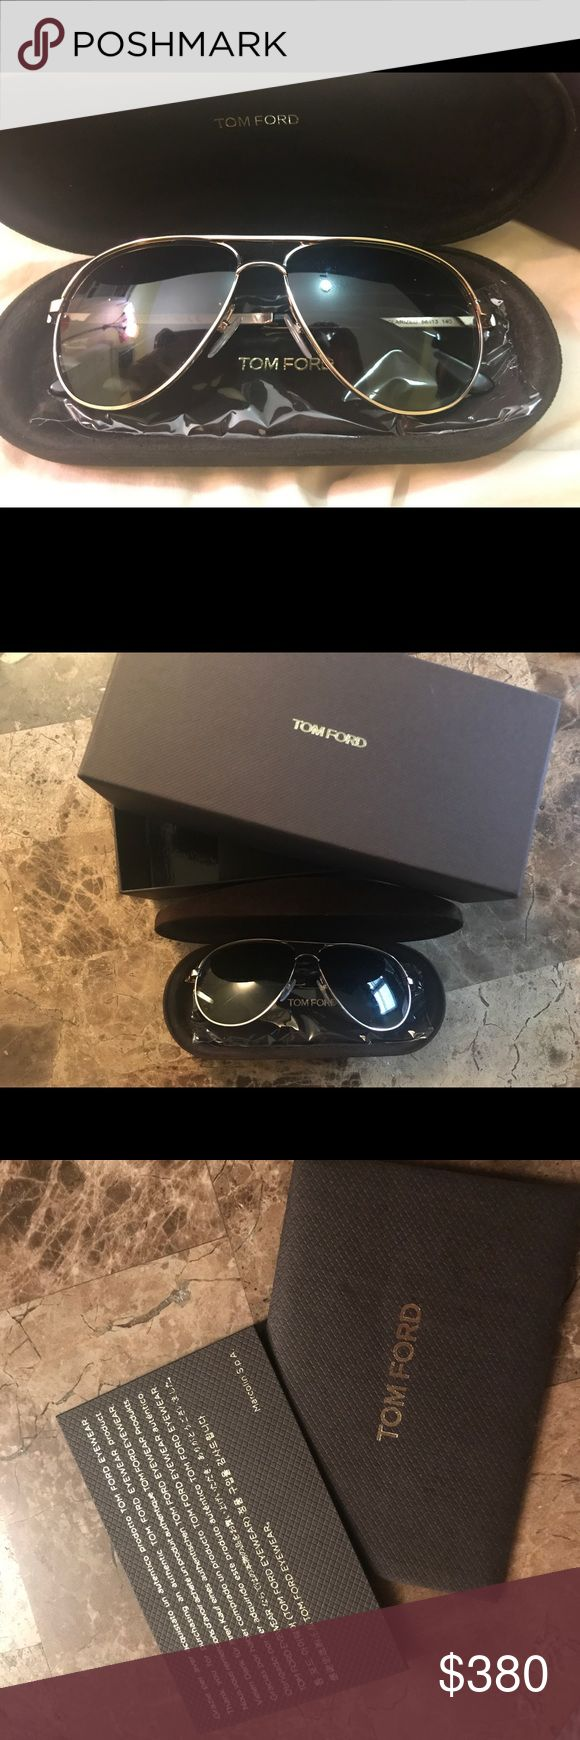 New! Tom Ford Marko Polarized Aviator Sunglasses Just purchased last month, worn once! Color is Rose Gold. Comes with sunglasses case, cloth (never opened and used the cloth) and authenticity card. Perfect condition. NO scratches. Tom Ford Accessories Sunglasses